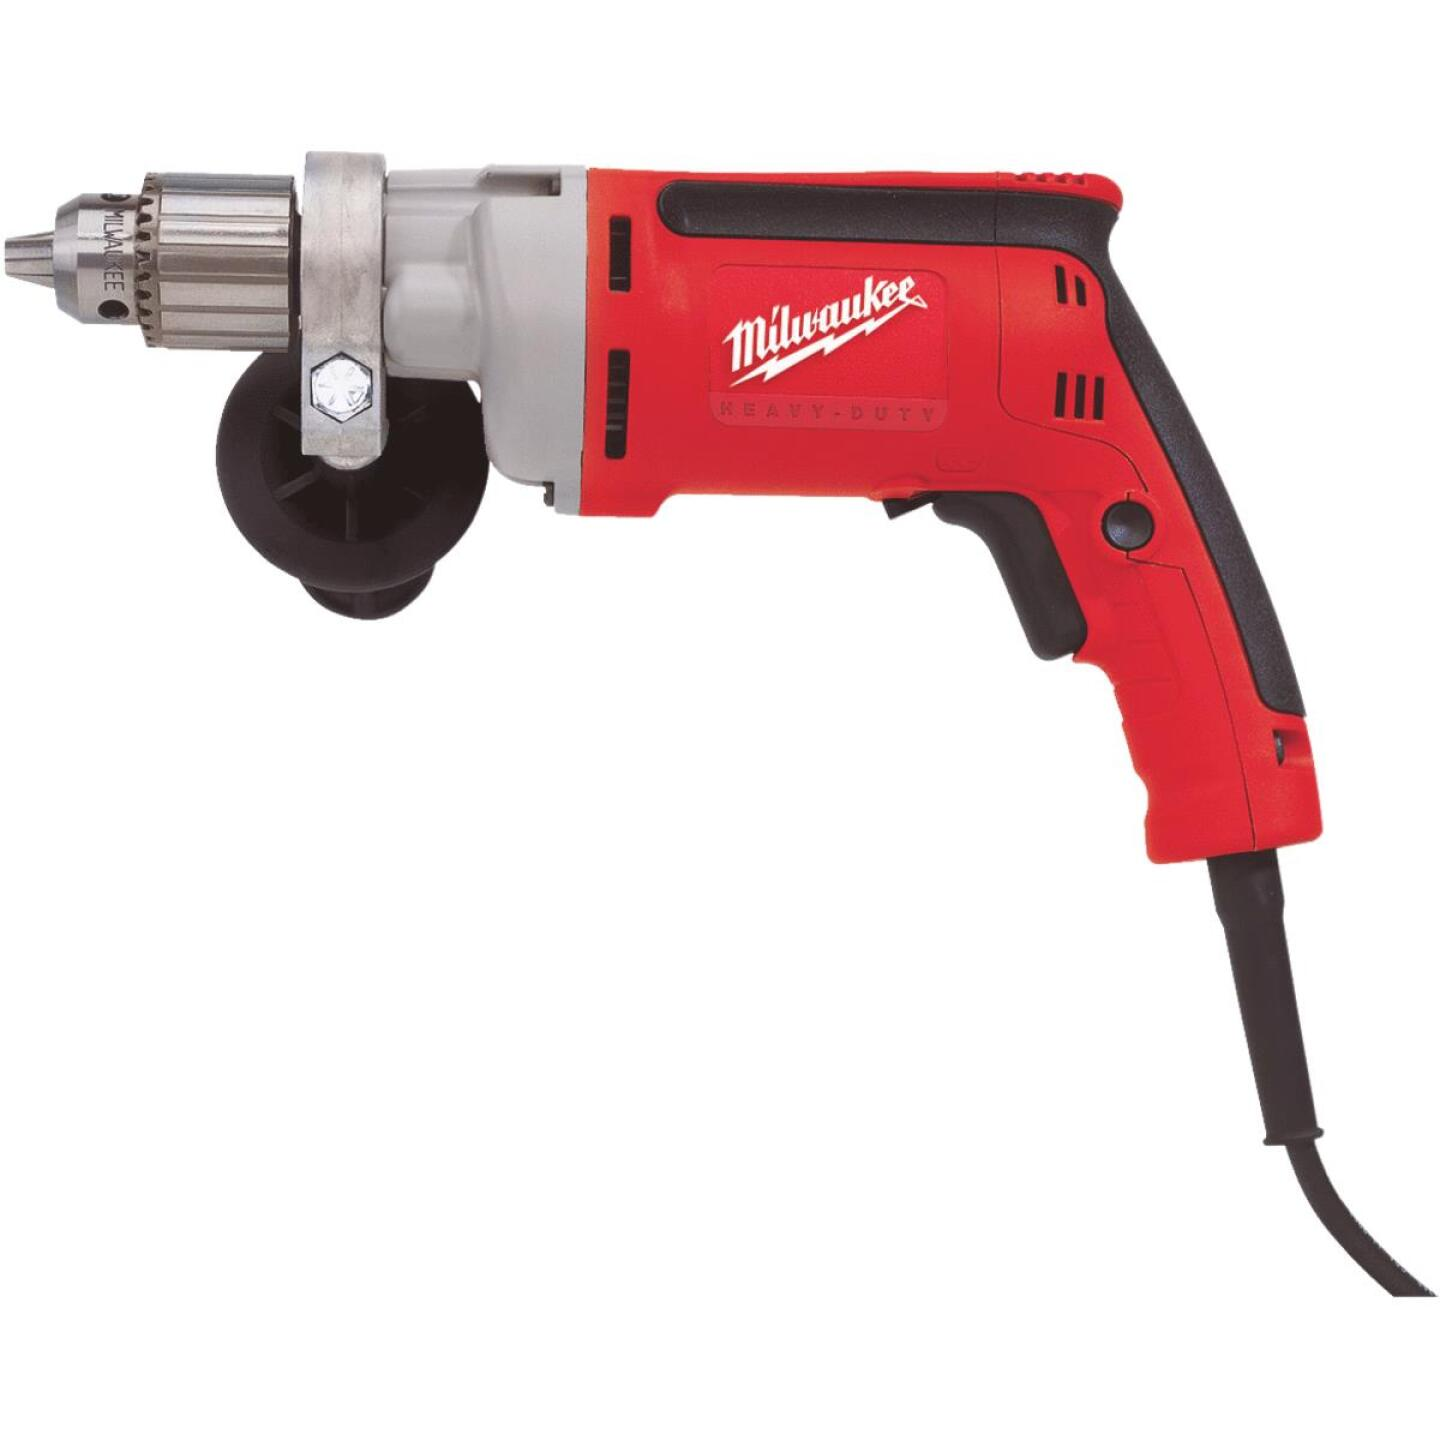 Milwaukee Magnum 1/2 In. 8-Amp Keyed Electric Drill with Tactile Grip Image 1